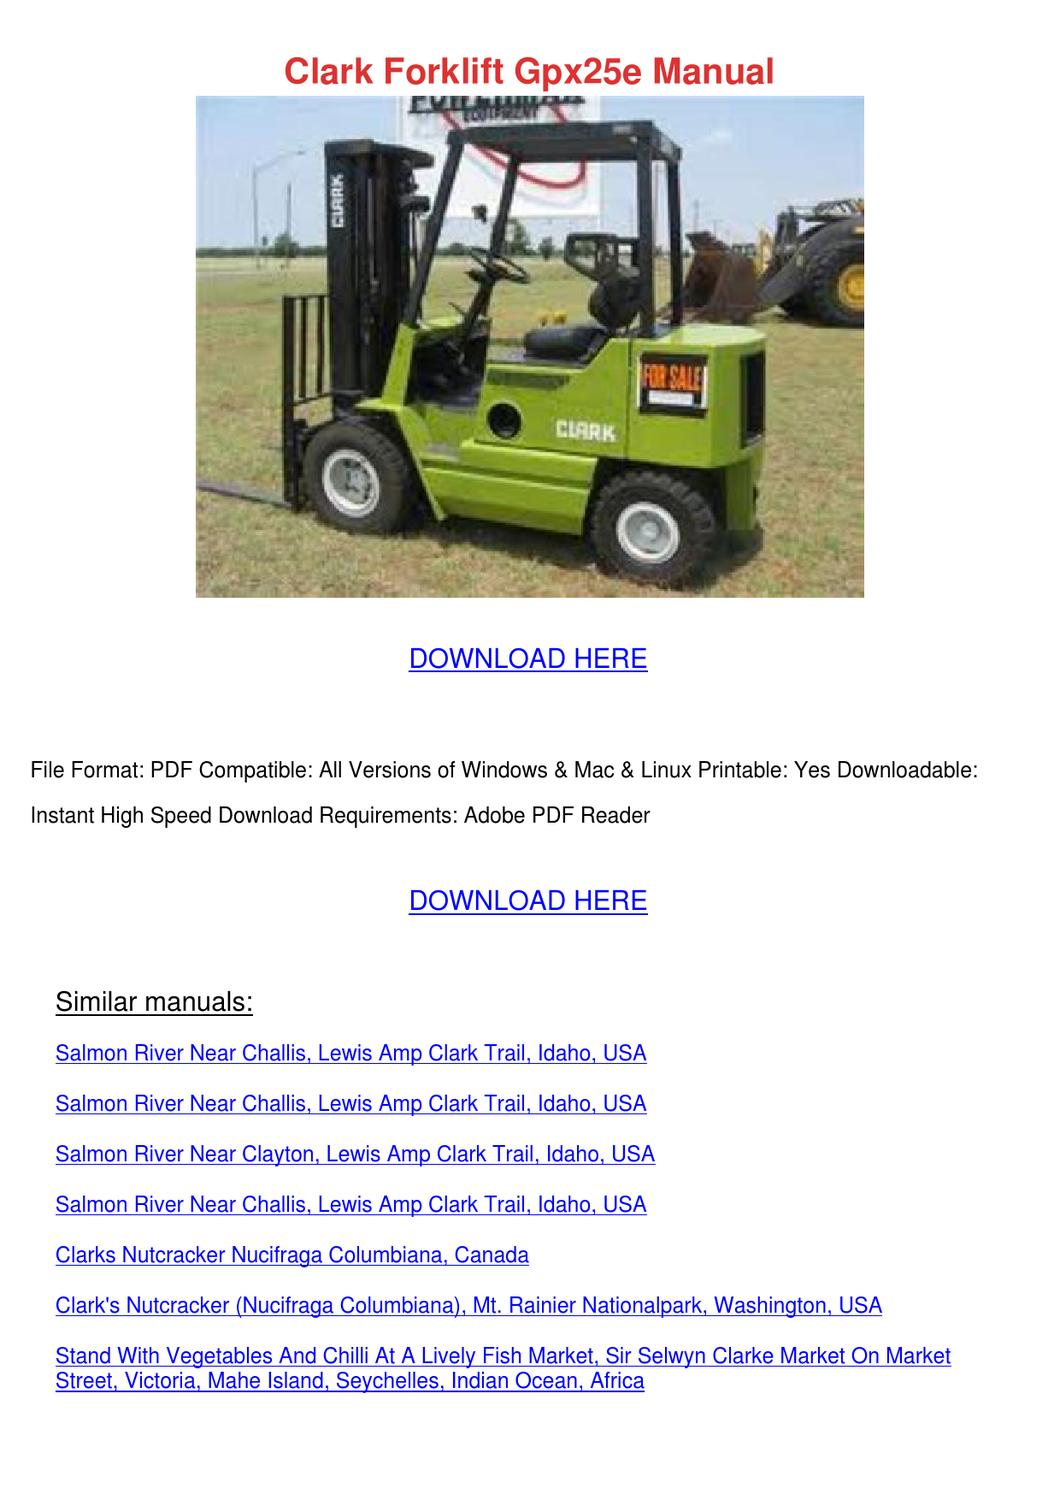 Clark Forklift Gpx25e Manual by MaxMcnally - issuu